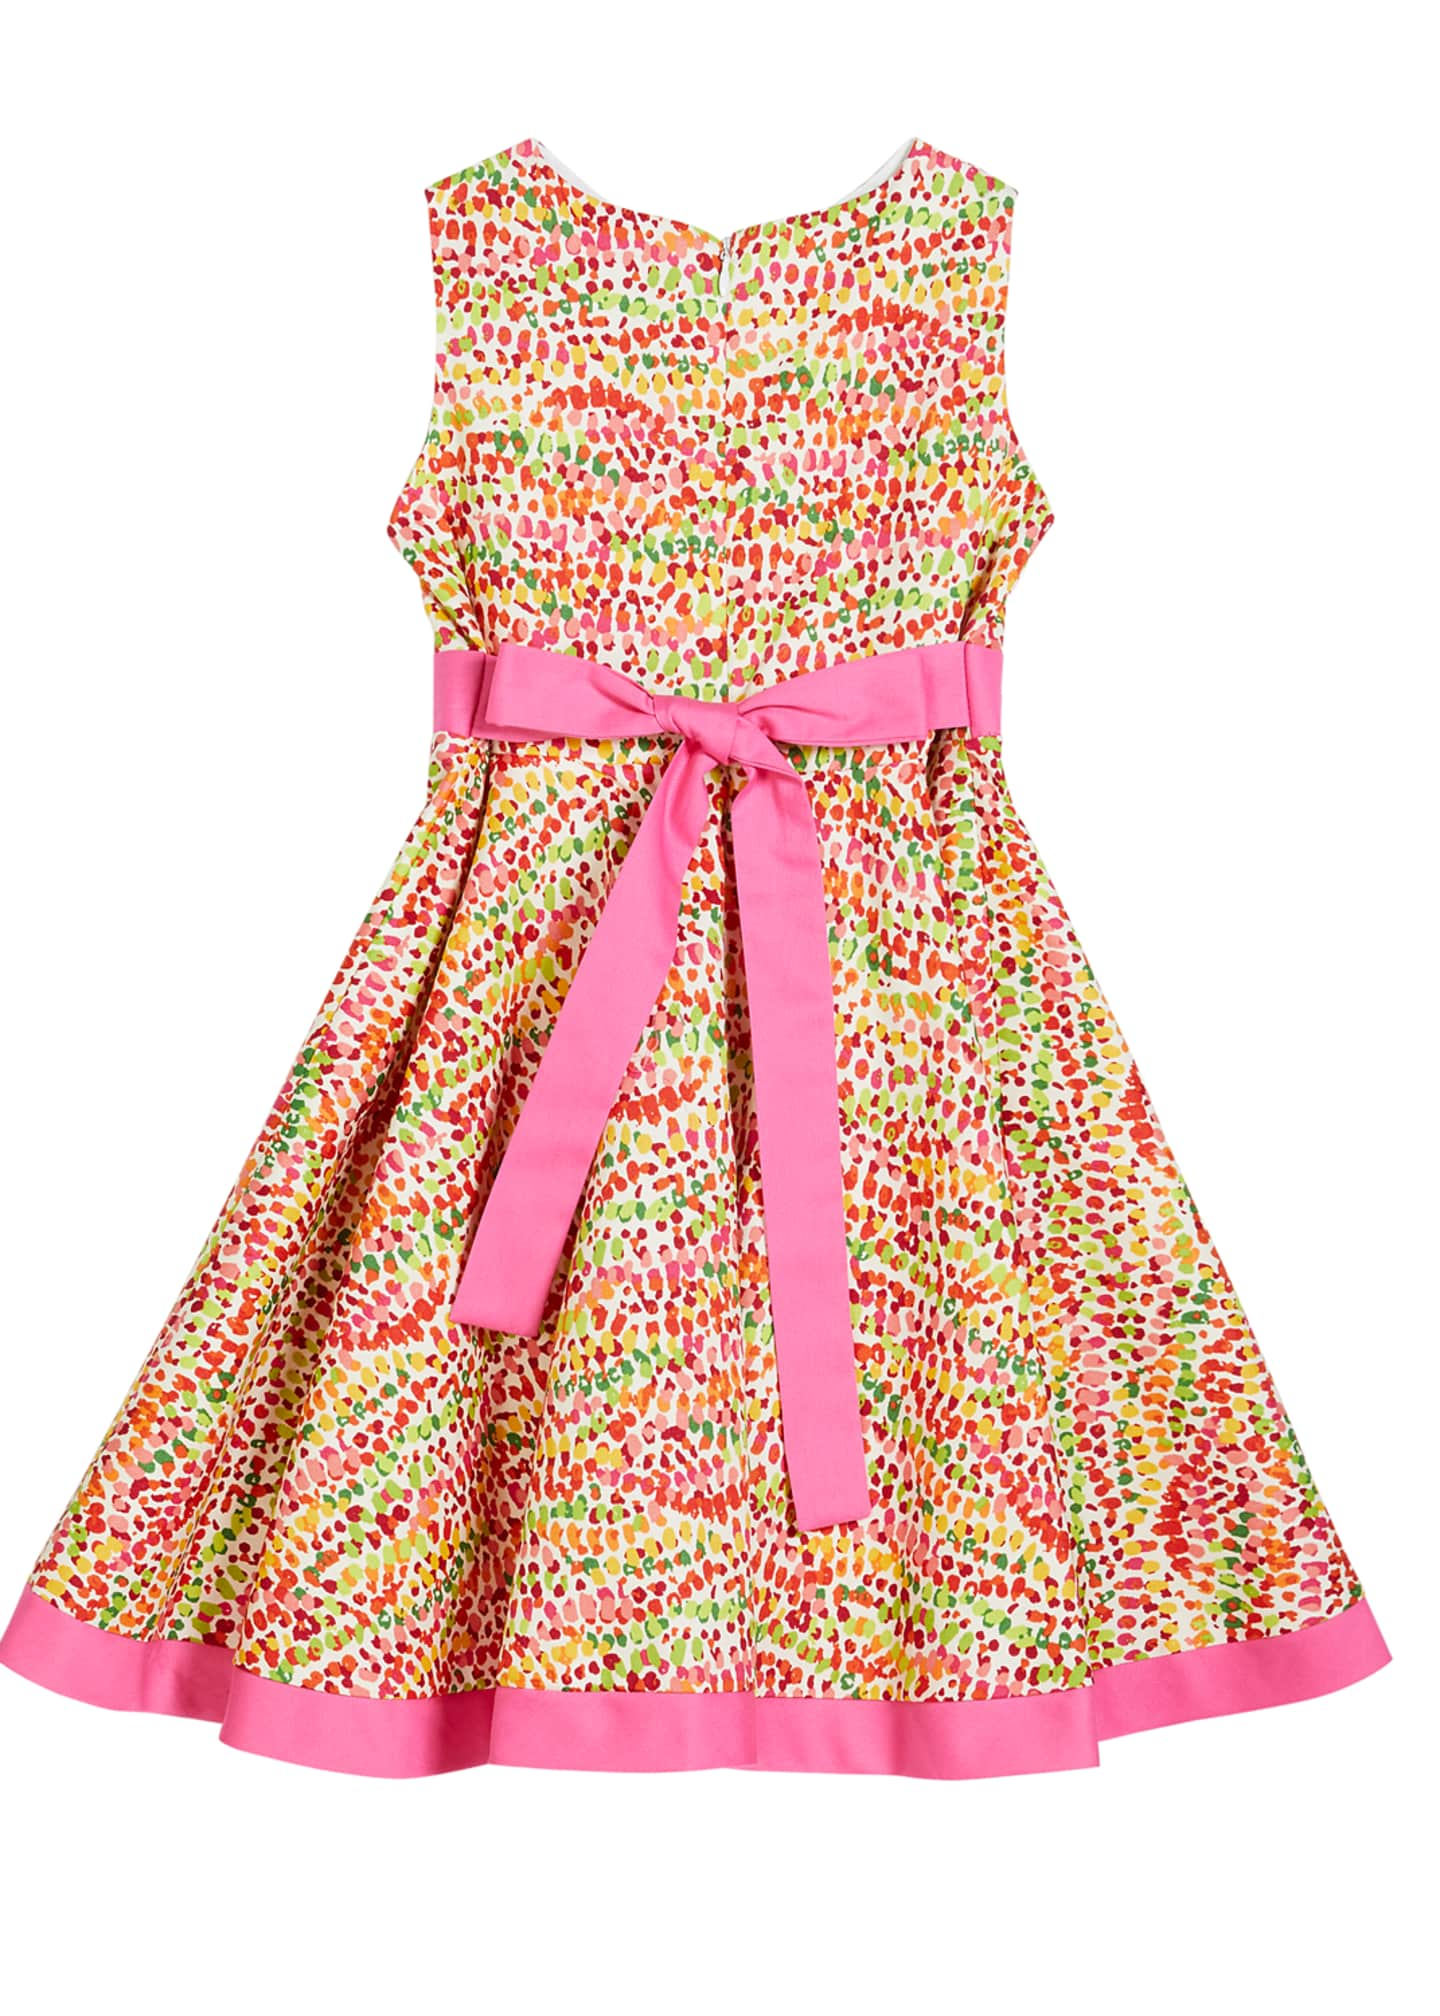 Image 2 of 2: Girl's Pebble Print Twirl Dress w/ Solid Trim, Size 4-6X